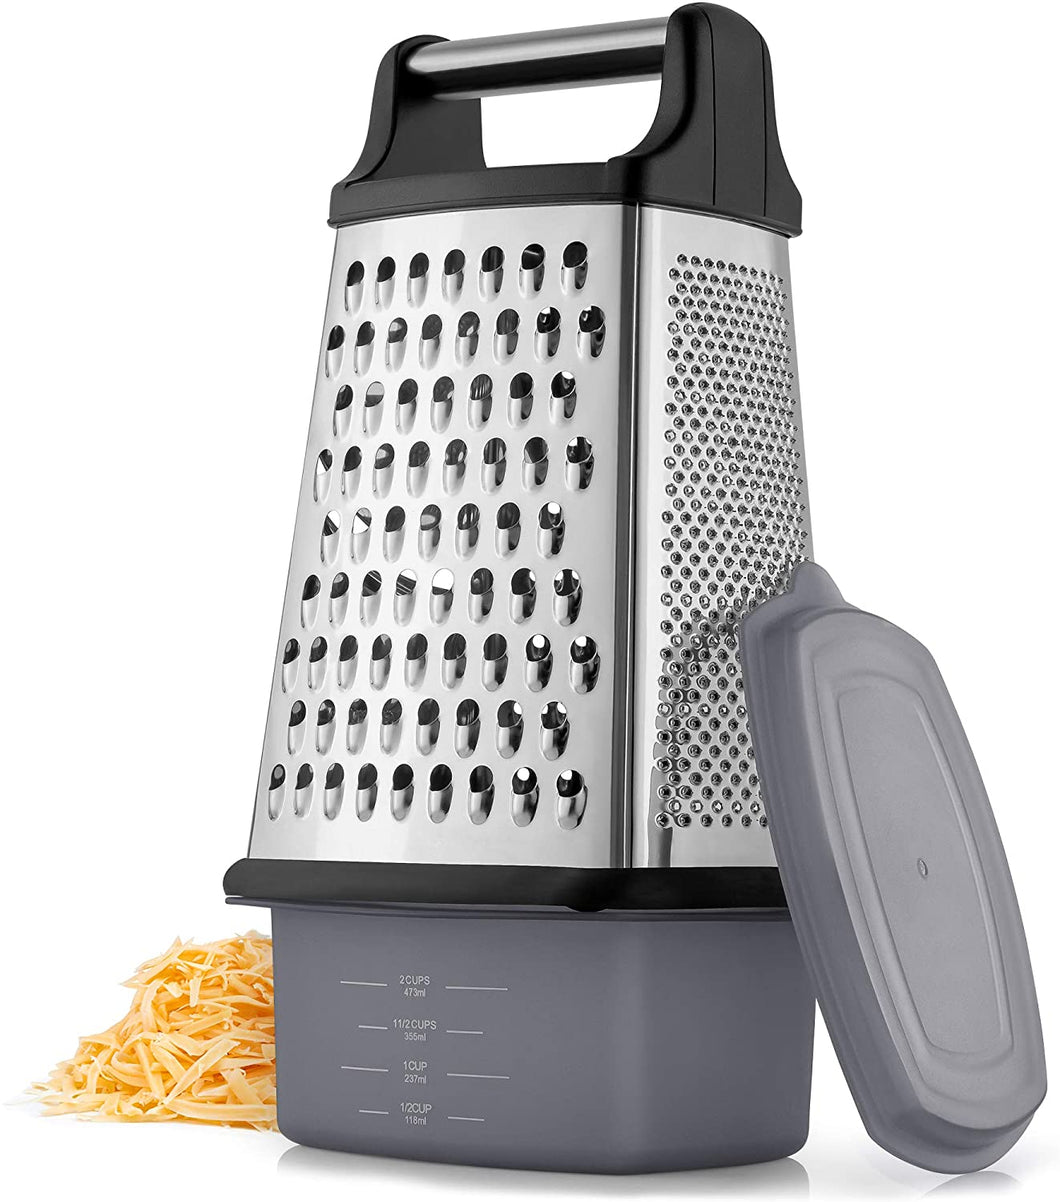 4-Sided Cheese Grater With Container - Stainless Steel Box Cheese Grater With Handle & Removable Storage Box